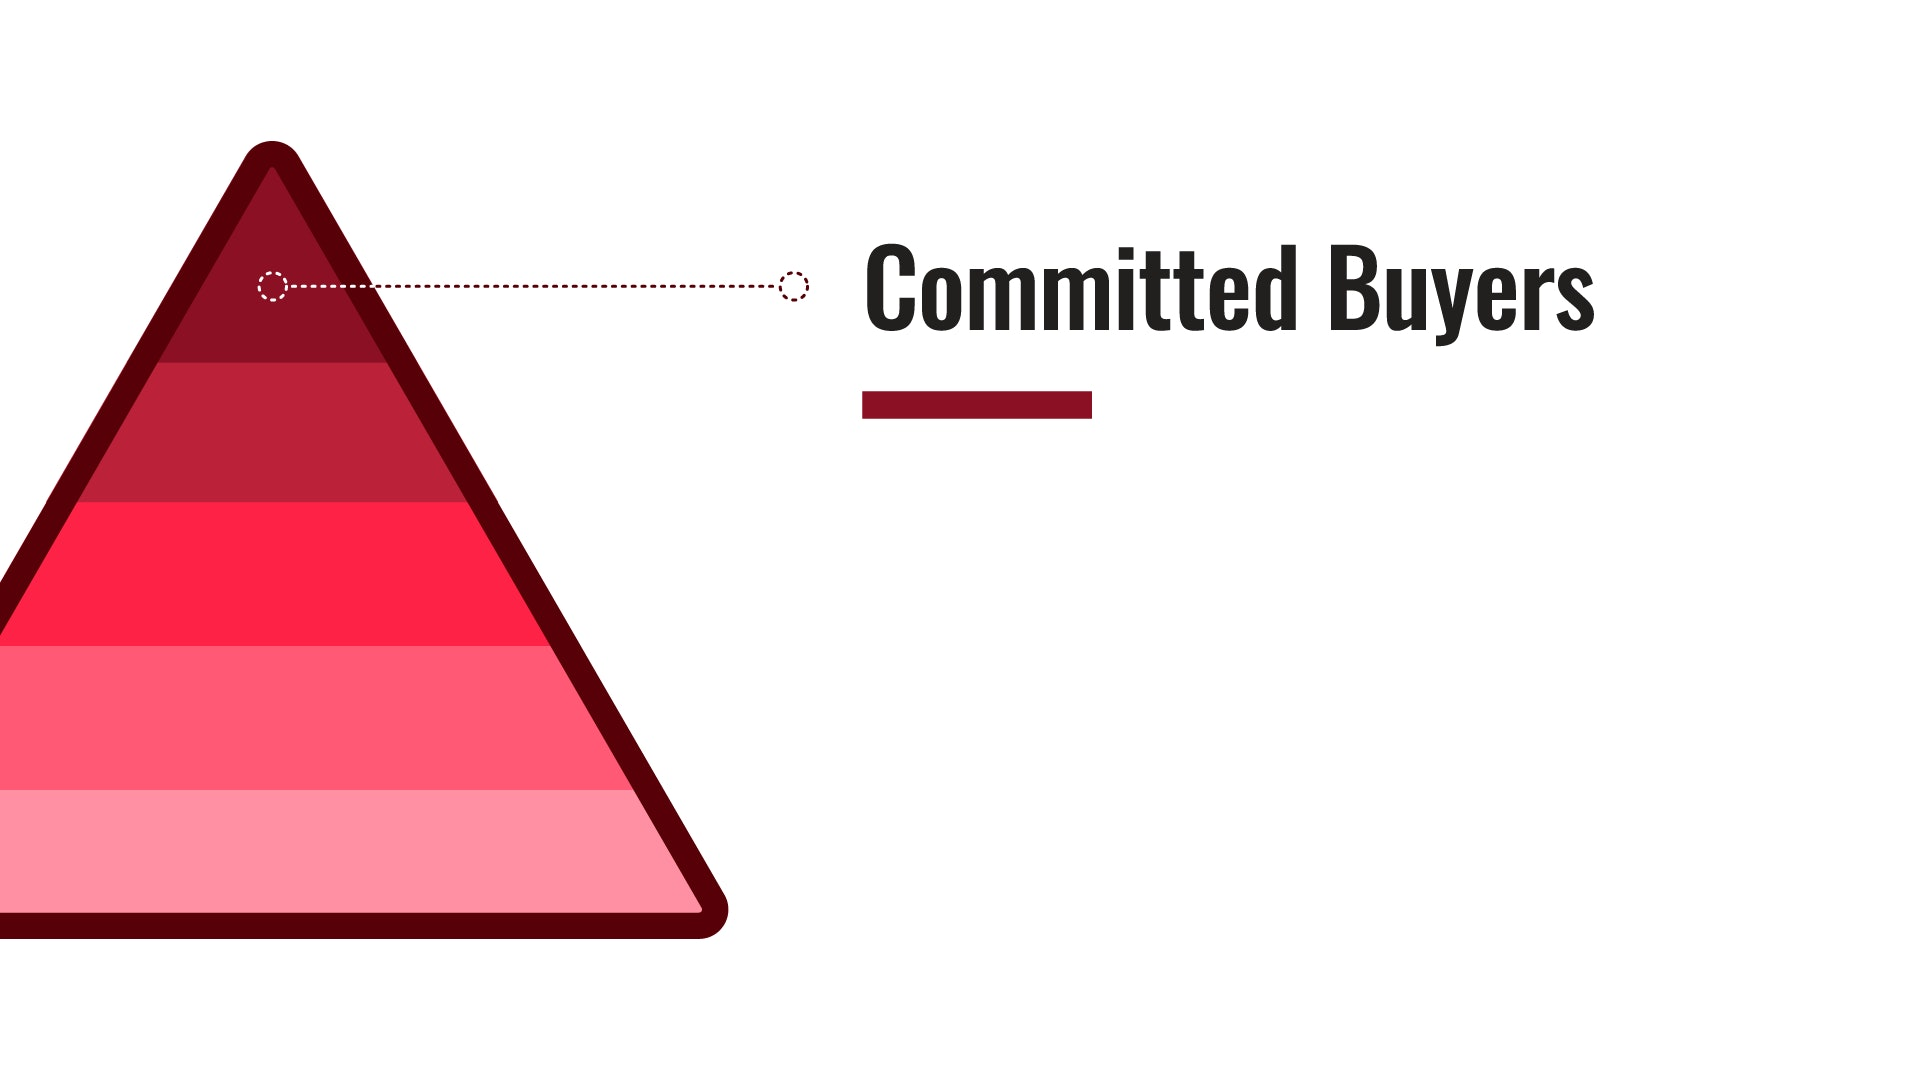 committed buyers graphic